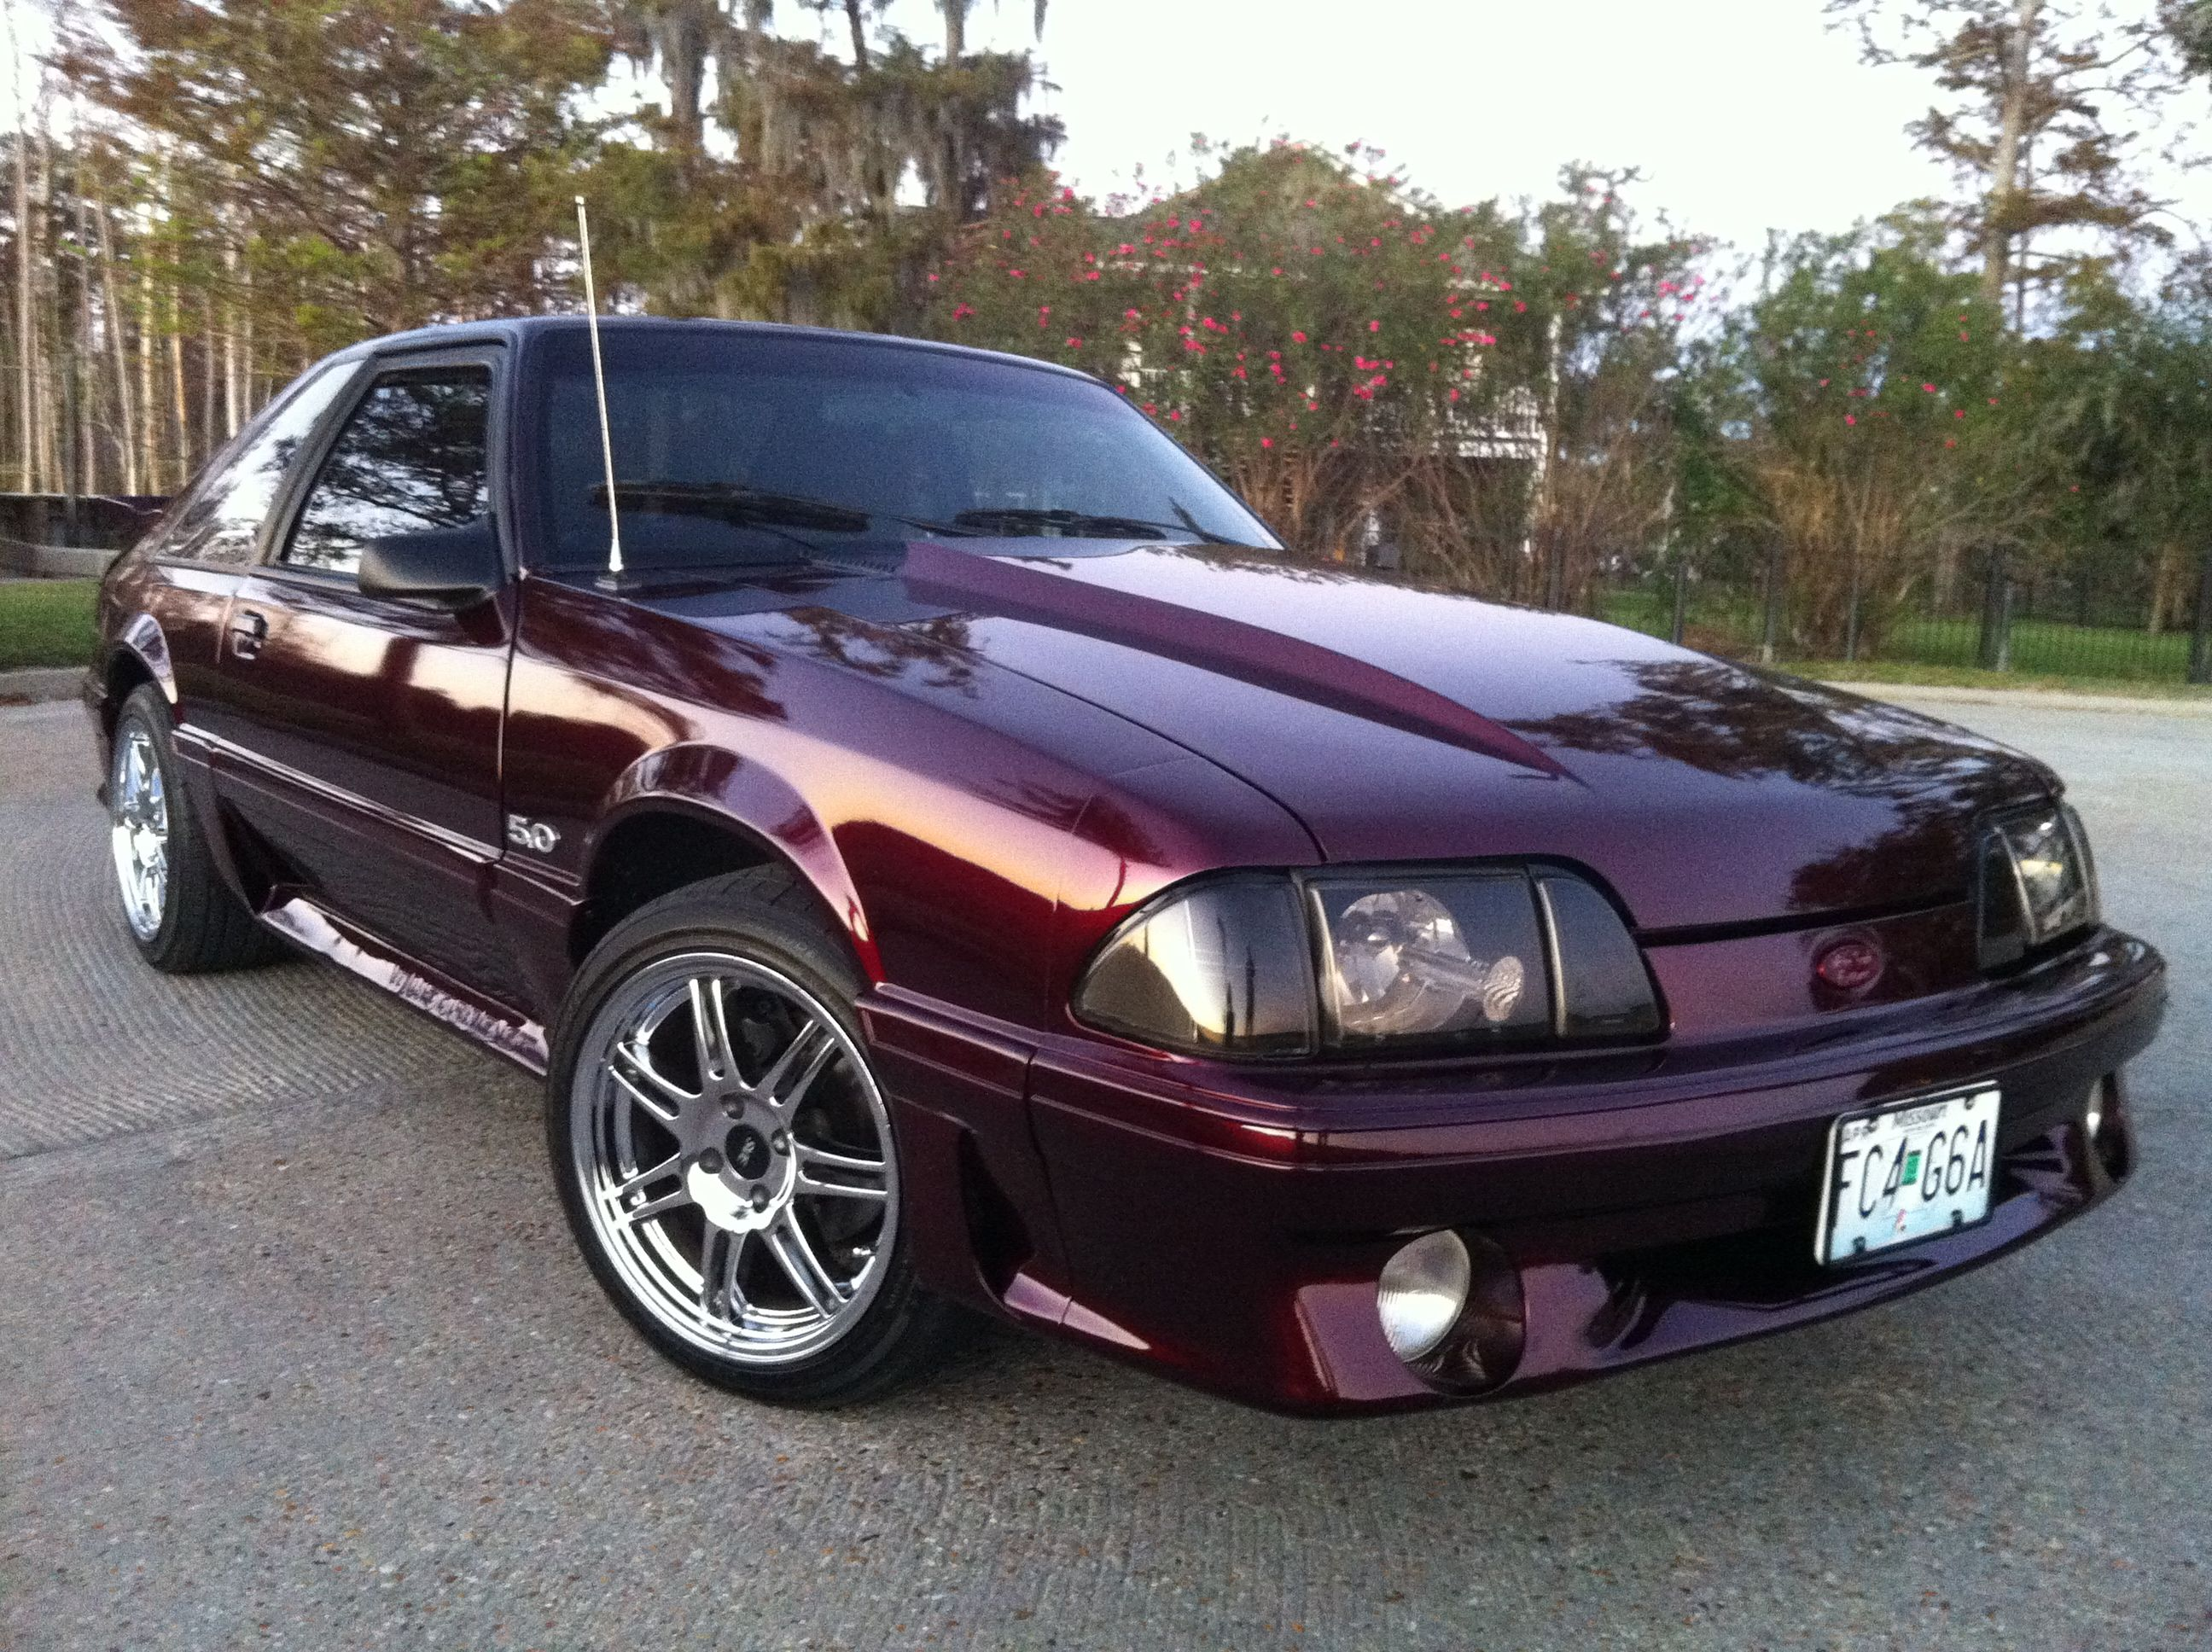 89 ford mustang ugh im in heaven